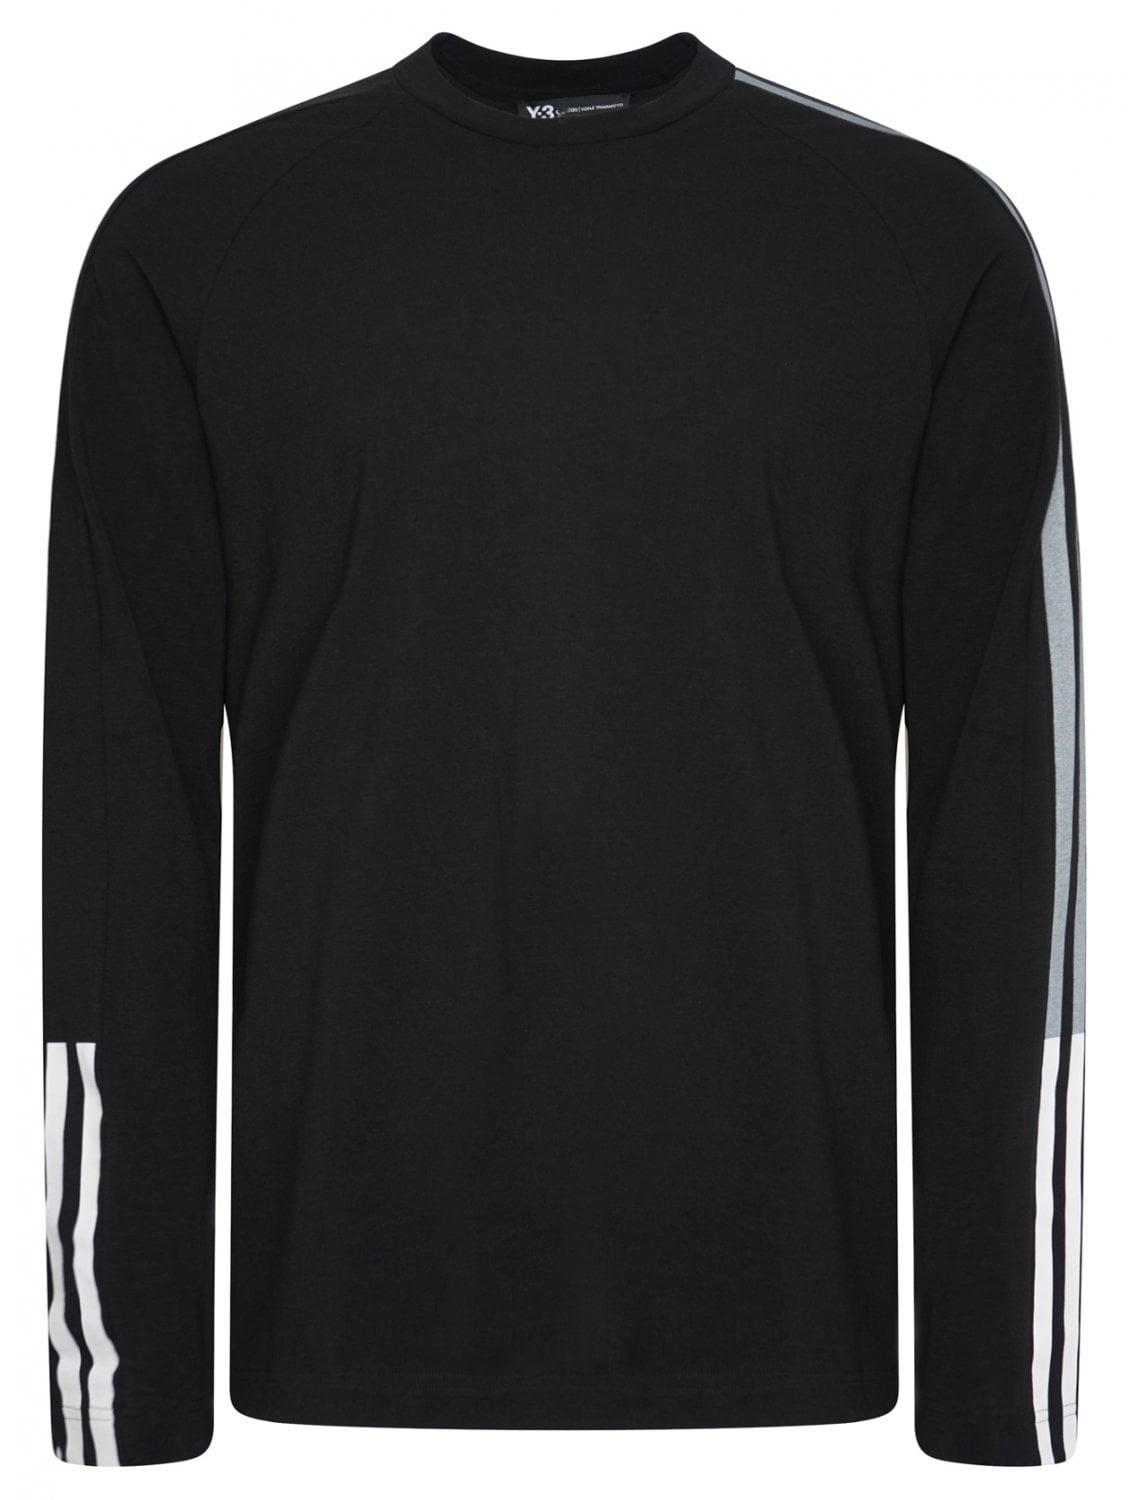 8be4f69e6311e Y-3 Raglan 3-stripe L s Tee Black in Black for Men - Lyst